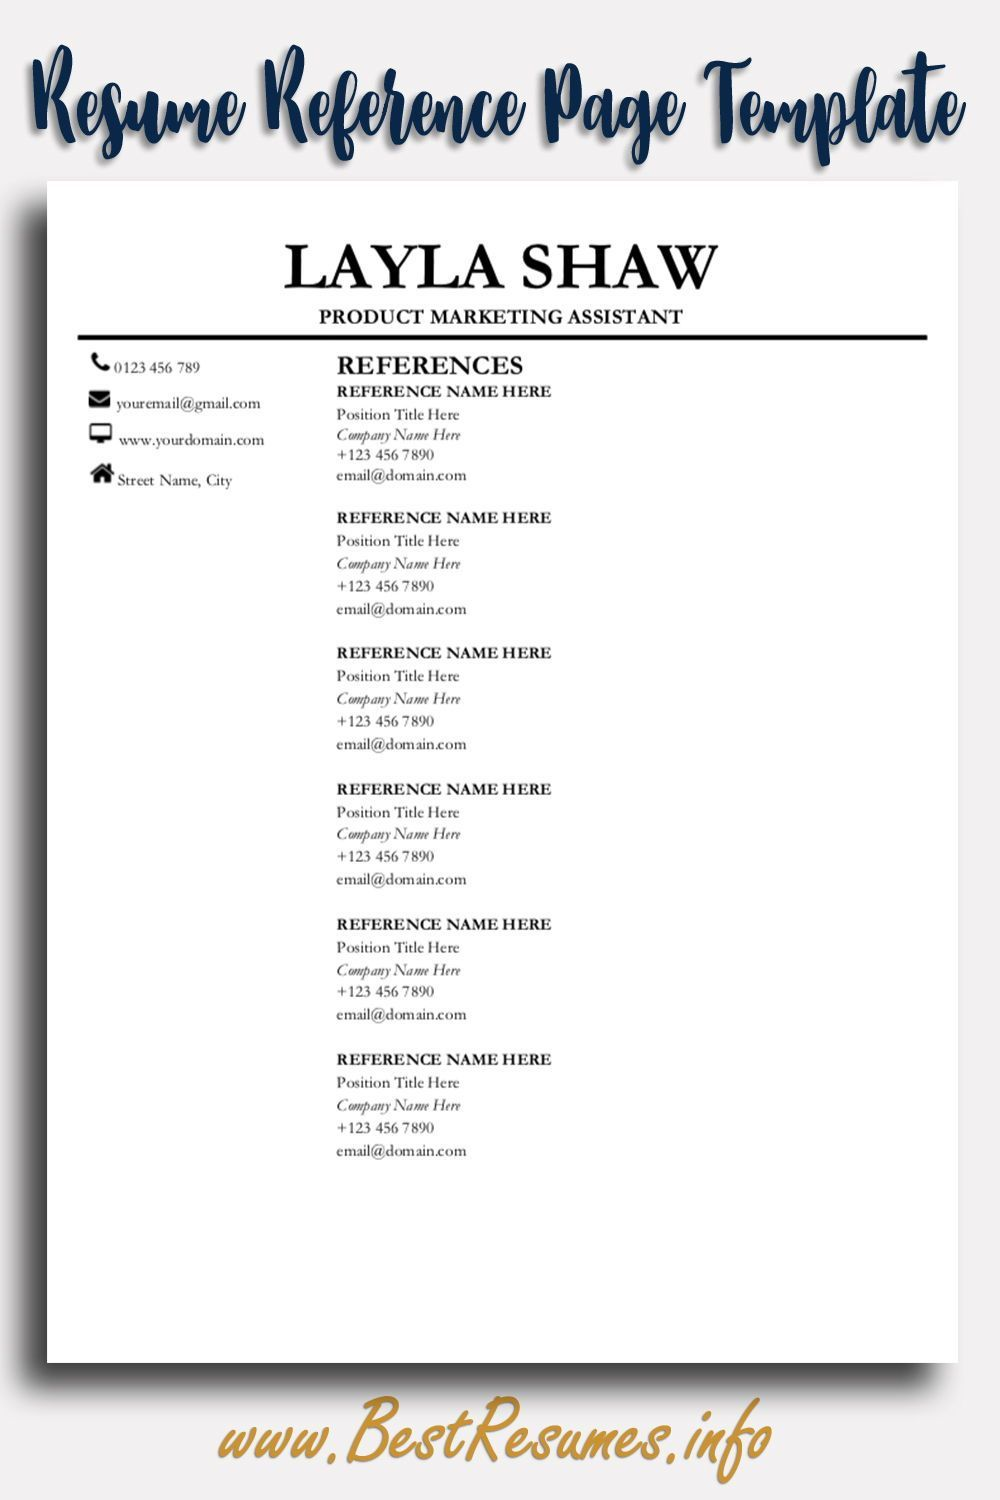 Reference page for resume resume references resume